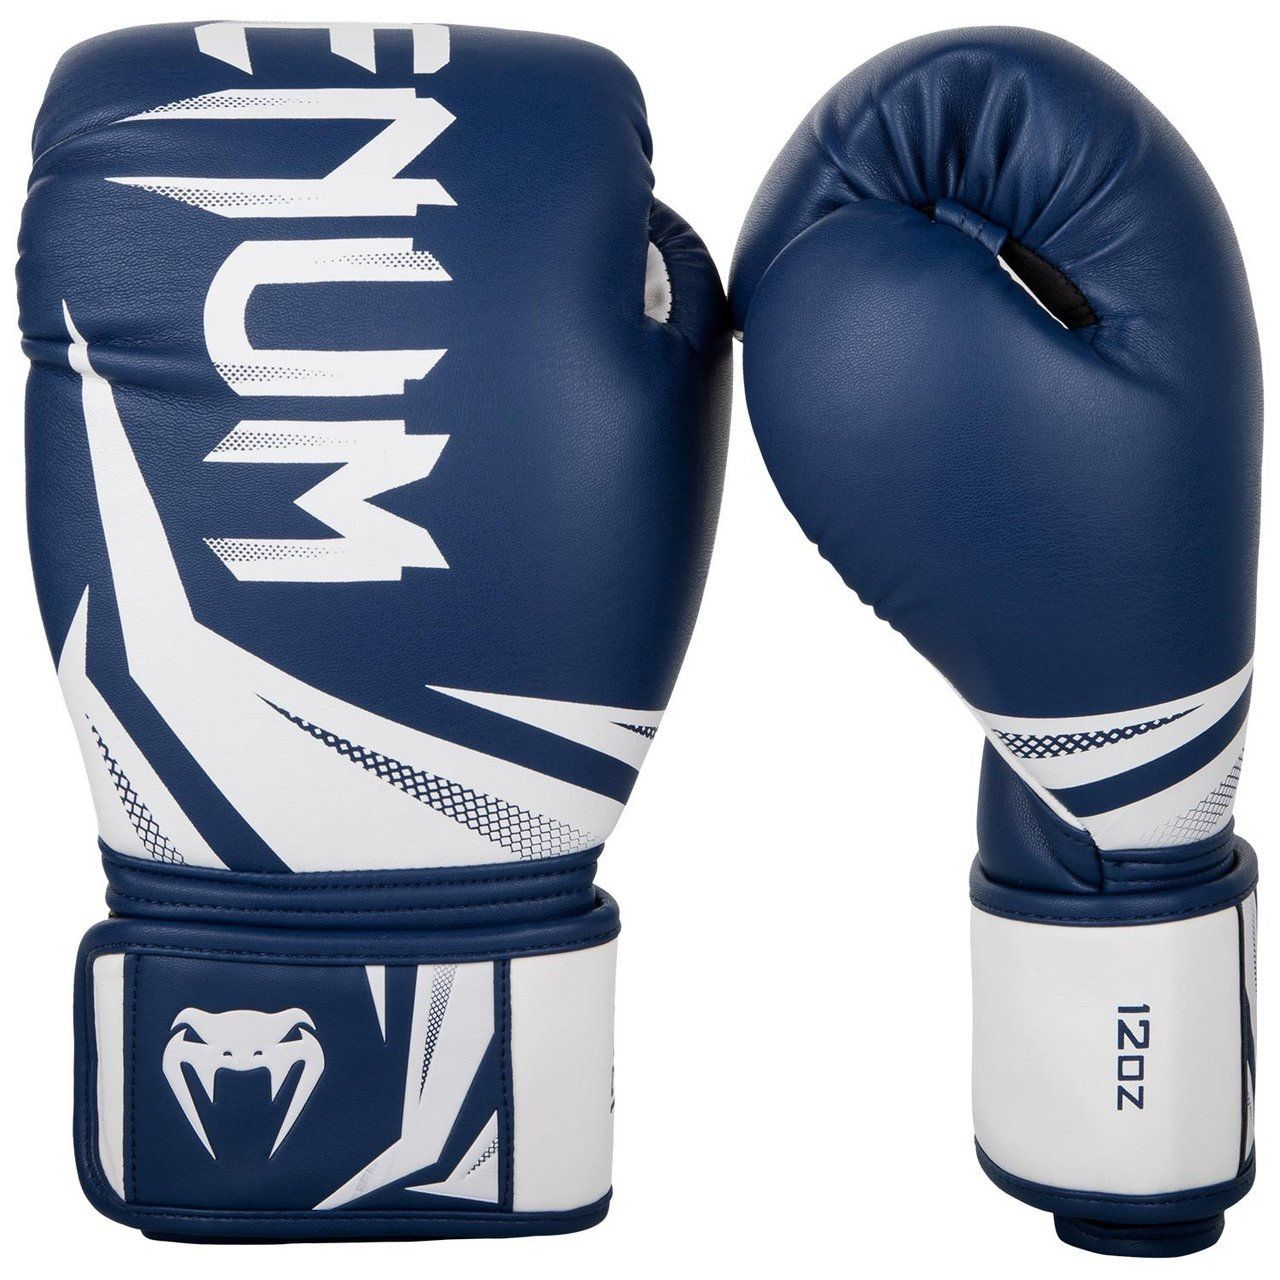 Venum Challenger 3 0 Boxing Gloves Navy White Boxing Gloves Boxing Training Gloves Gloves